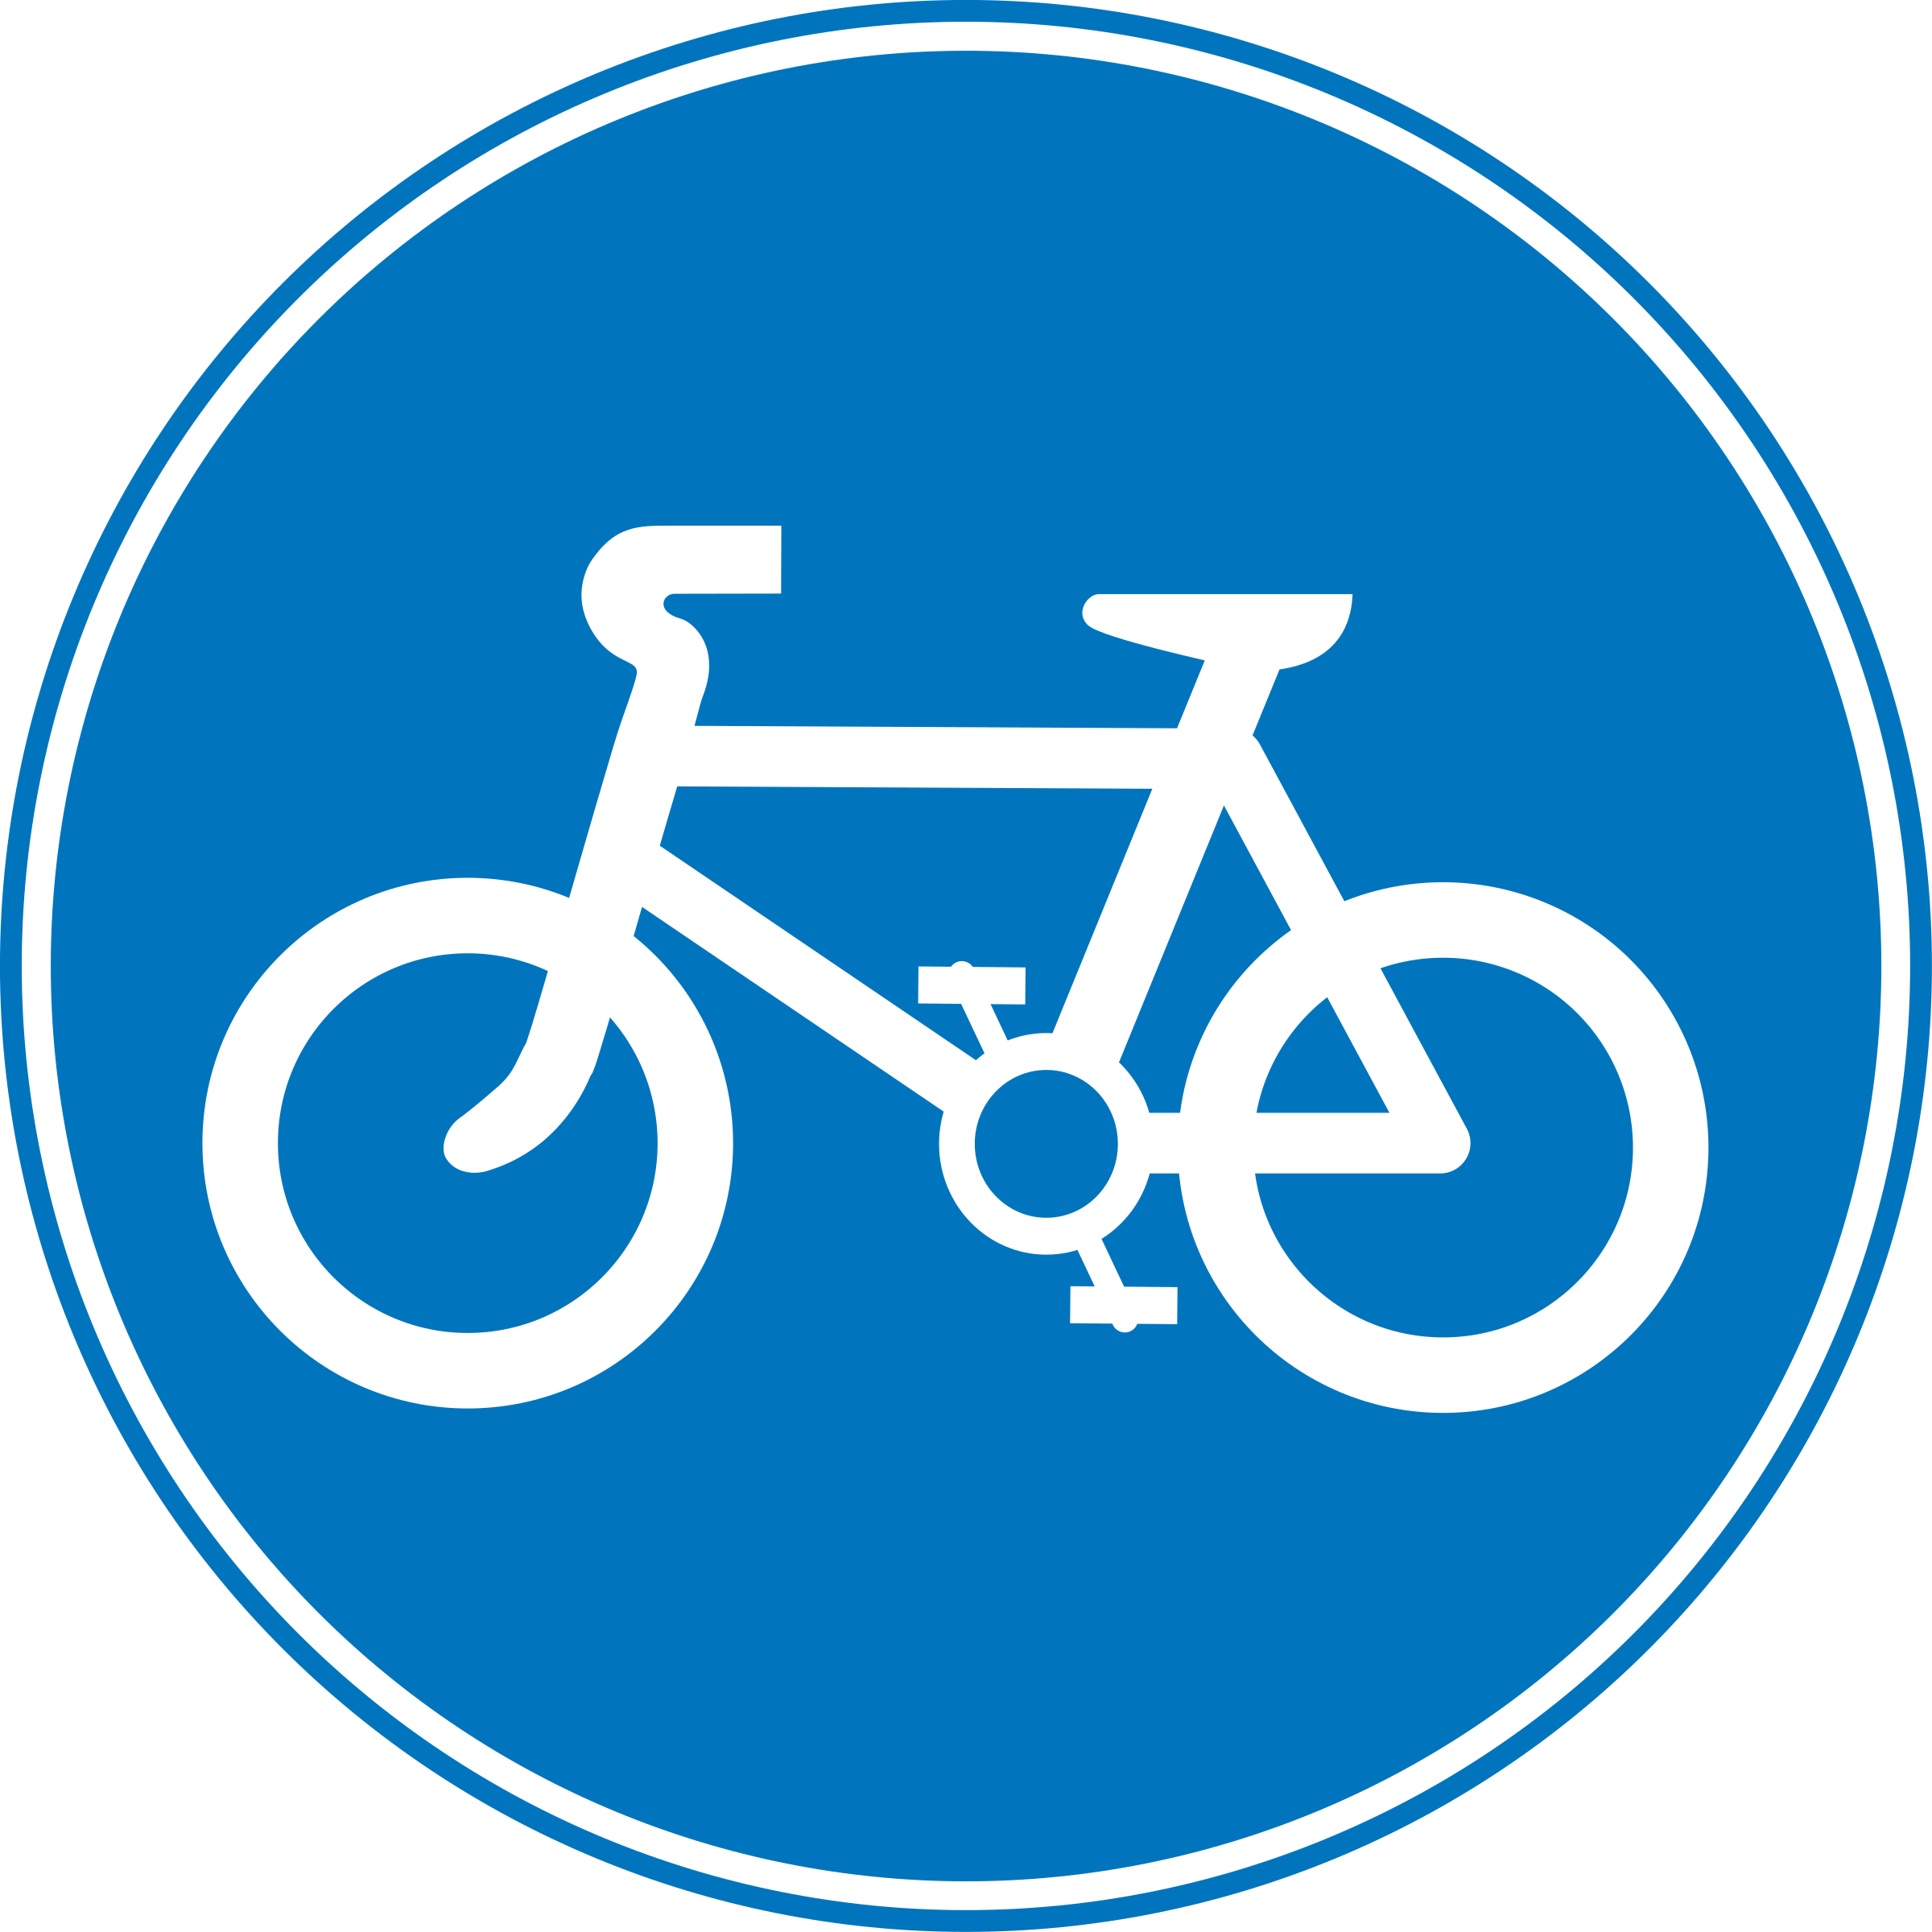 Roadsign Cycles by Simarilius